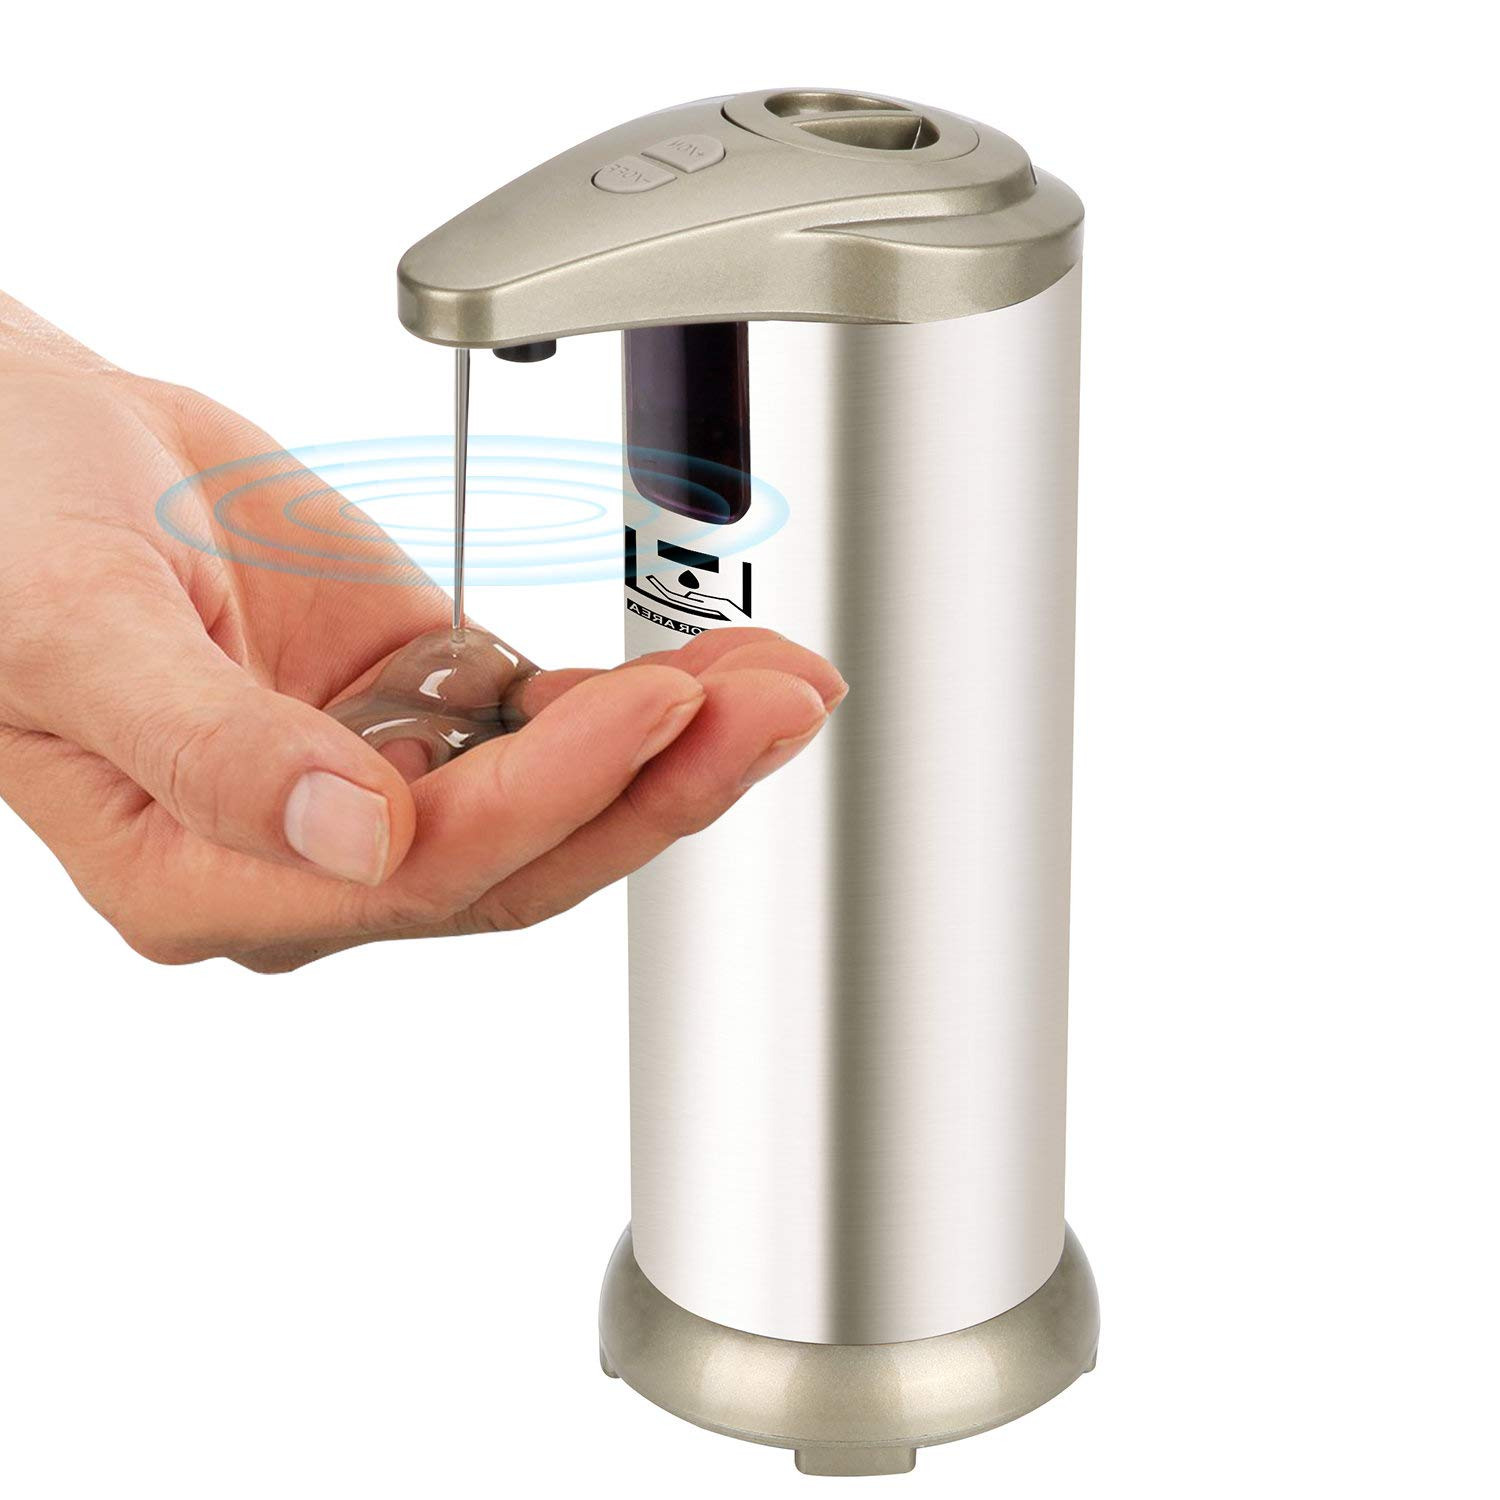 Automatic Soap Dispenser, UFire Mini Soap Dispenser with Stainless Steel Body and Waterproof Base Auto-soap Dispenser for Kitchen and Bathroom